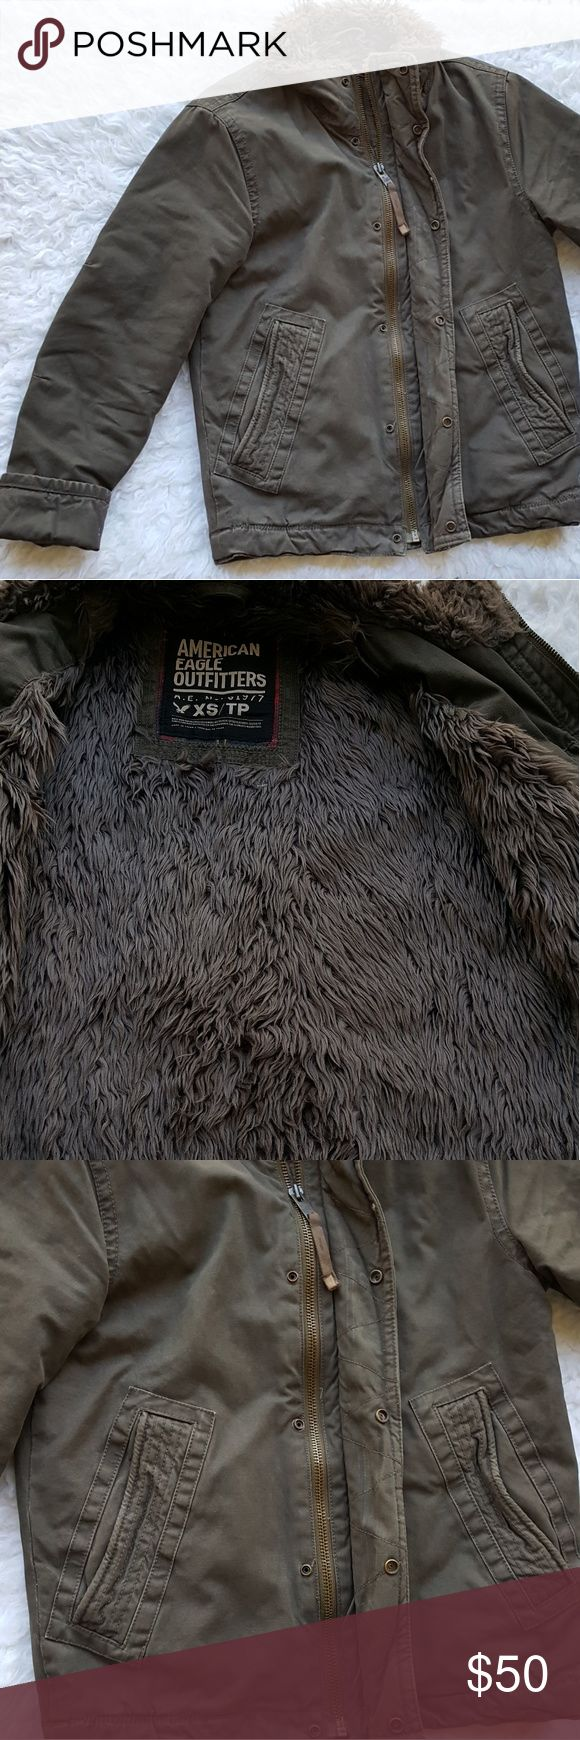 American Eagle Outfitter Heavy Winter Coat American Eagle Outfitter Heavy Winter Coat American Eagle Outfitter Jackets & Coats